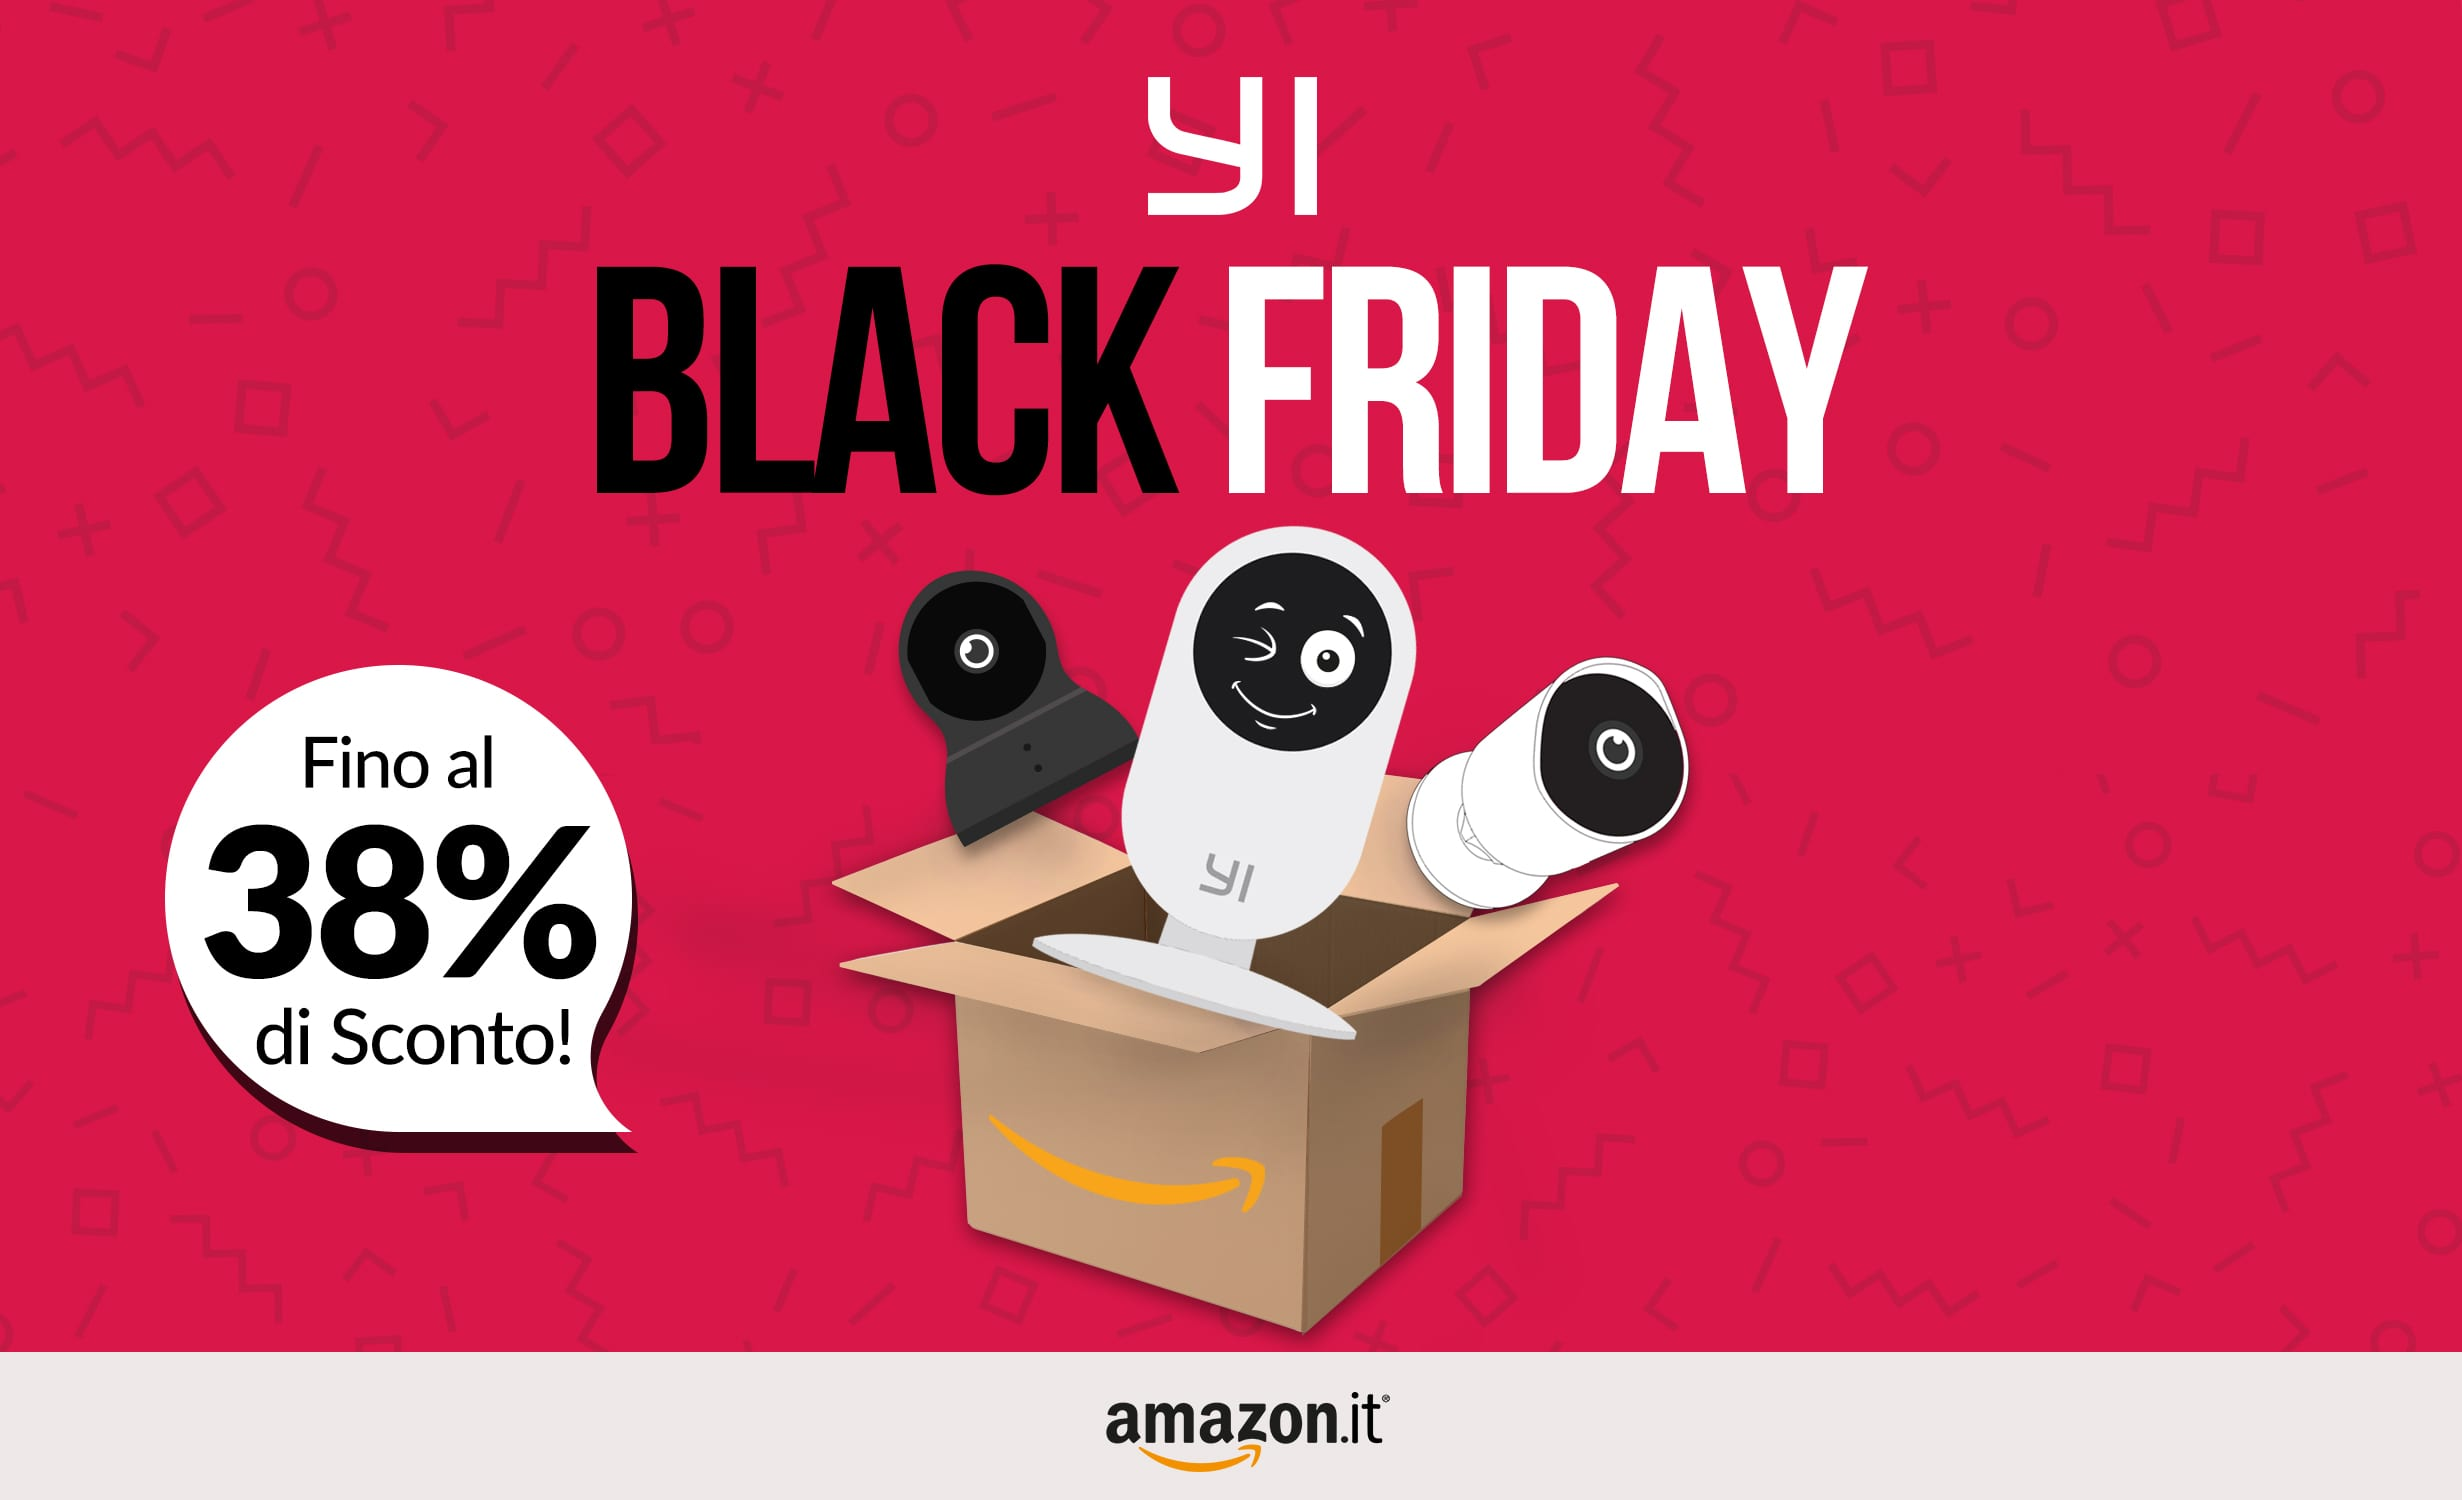 Black Friday di YI Technology: le migliori camere di sorveglianza smart in offerta